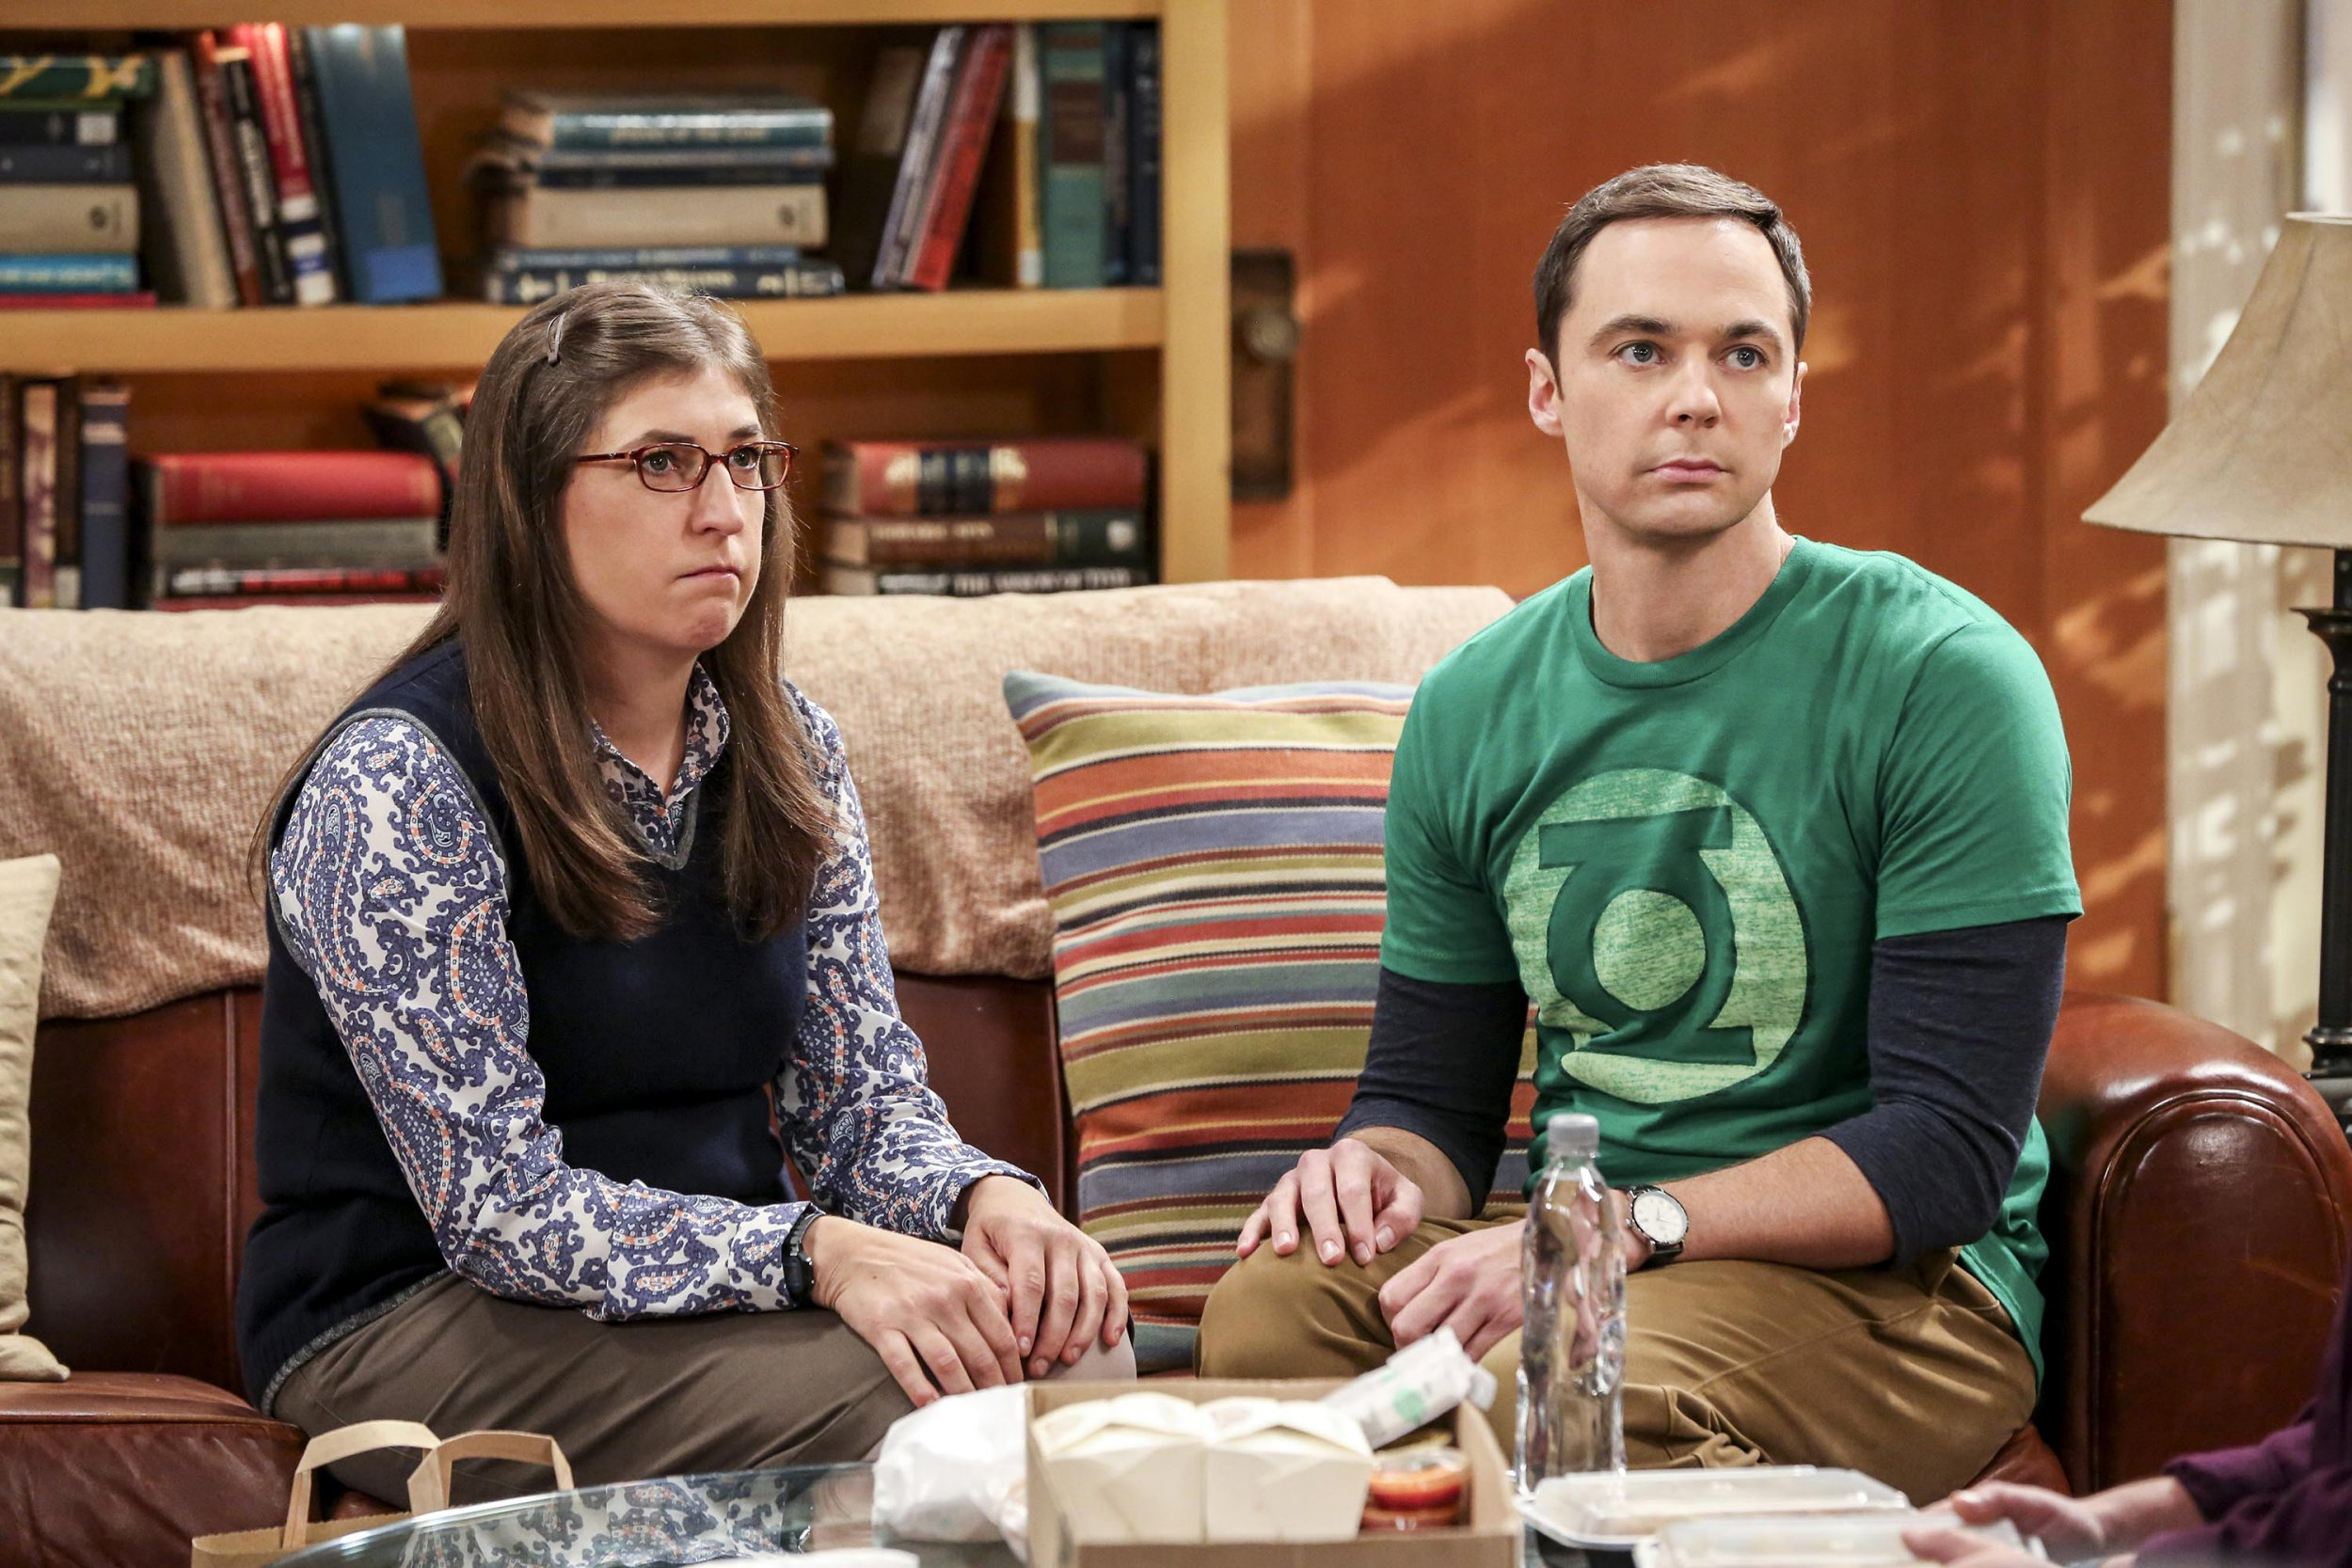 Television programme: The Big Bang Theory Series 10: Episode 4, starring Mayim Bialik as Amy Farrah Fowler and Jim Parsons as Sheldon Cooper.